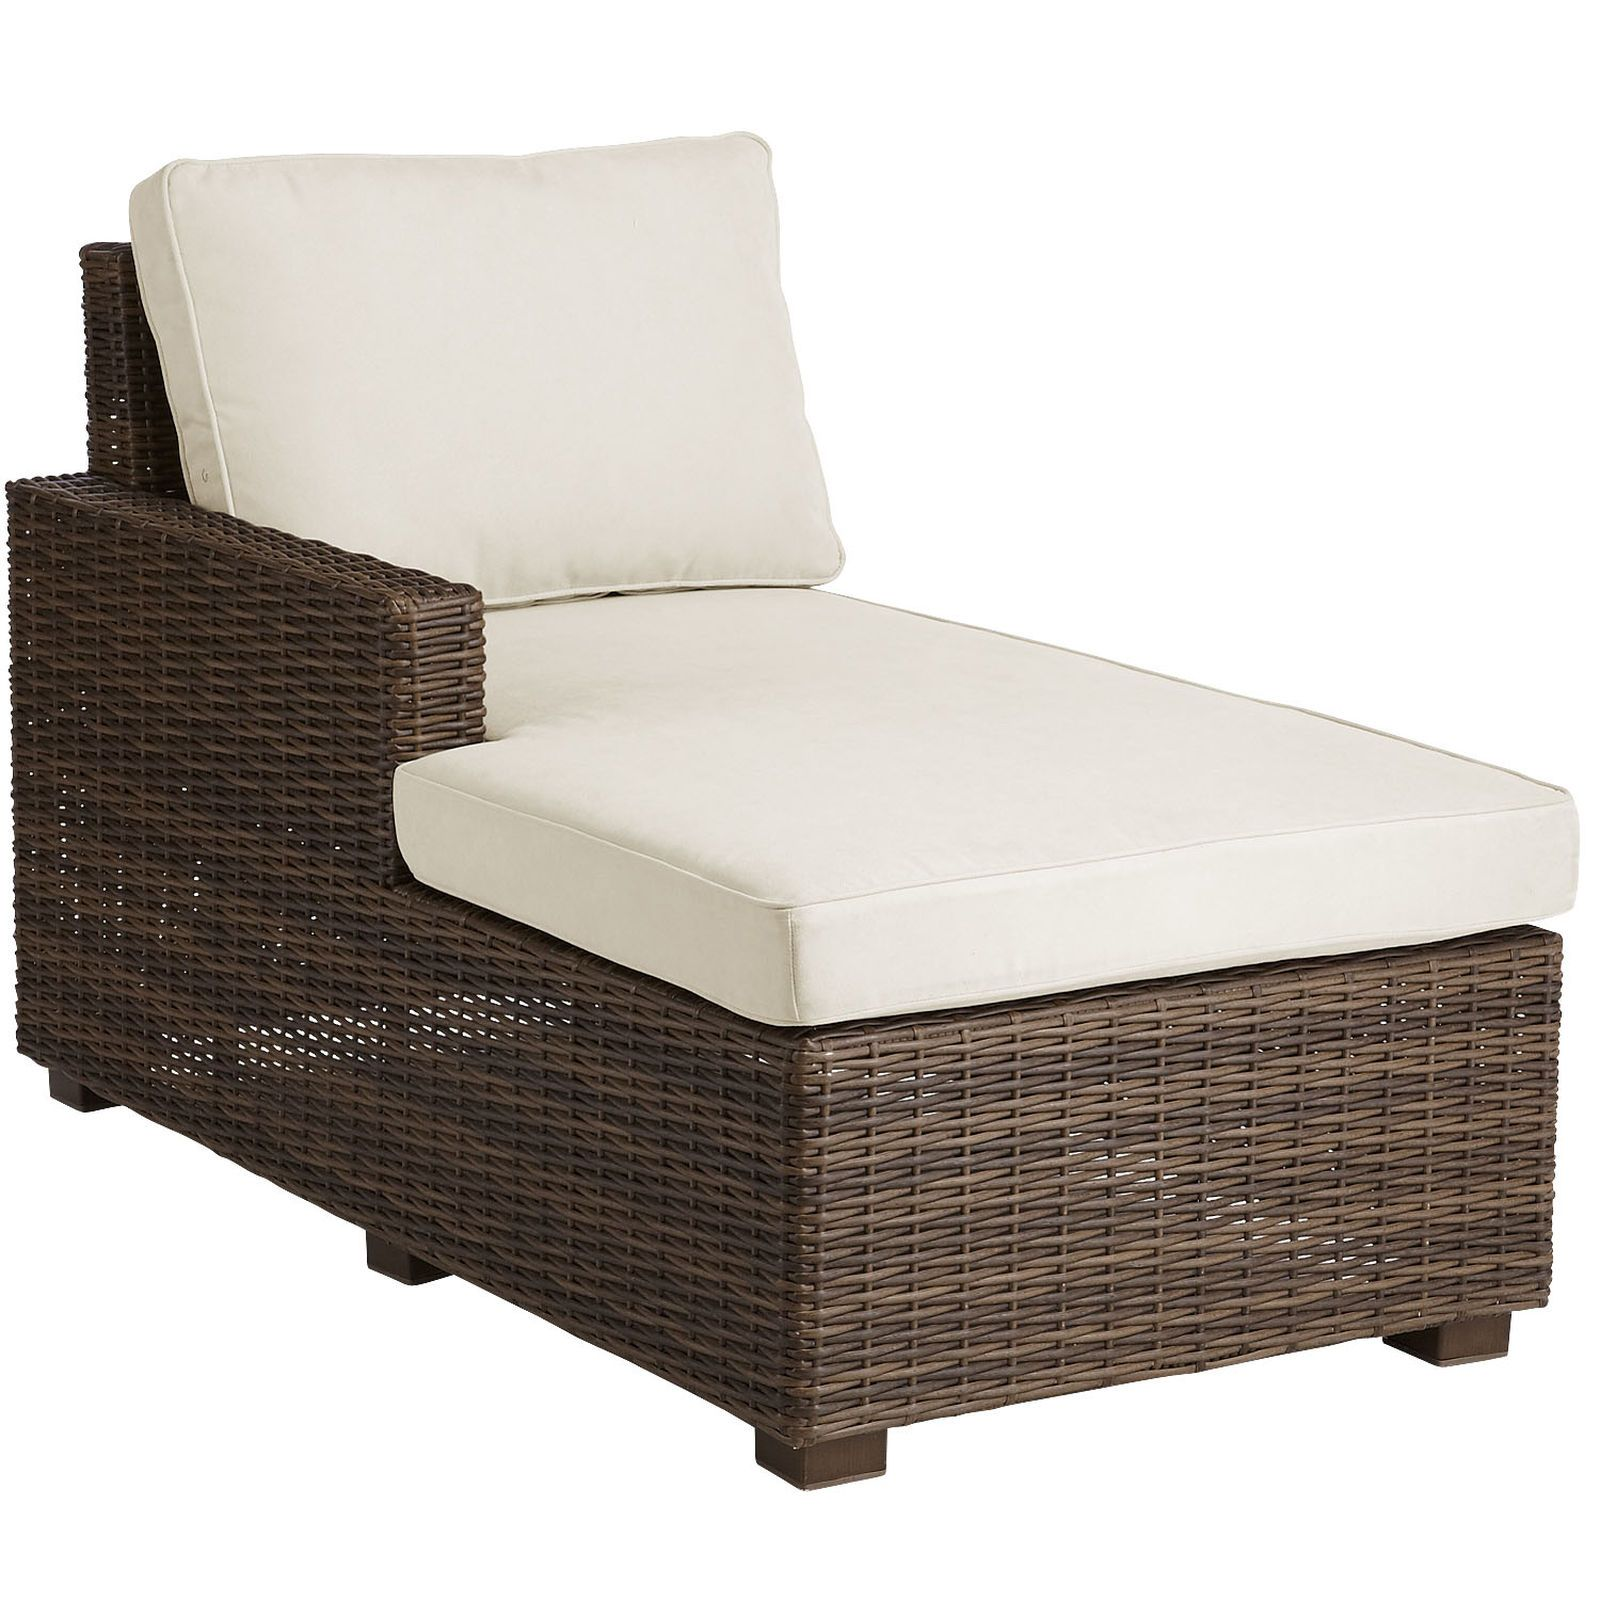 Echo Beach Latte Left Arm Facing Chaise Lounge Modern